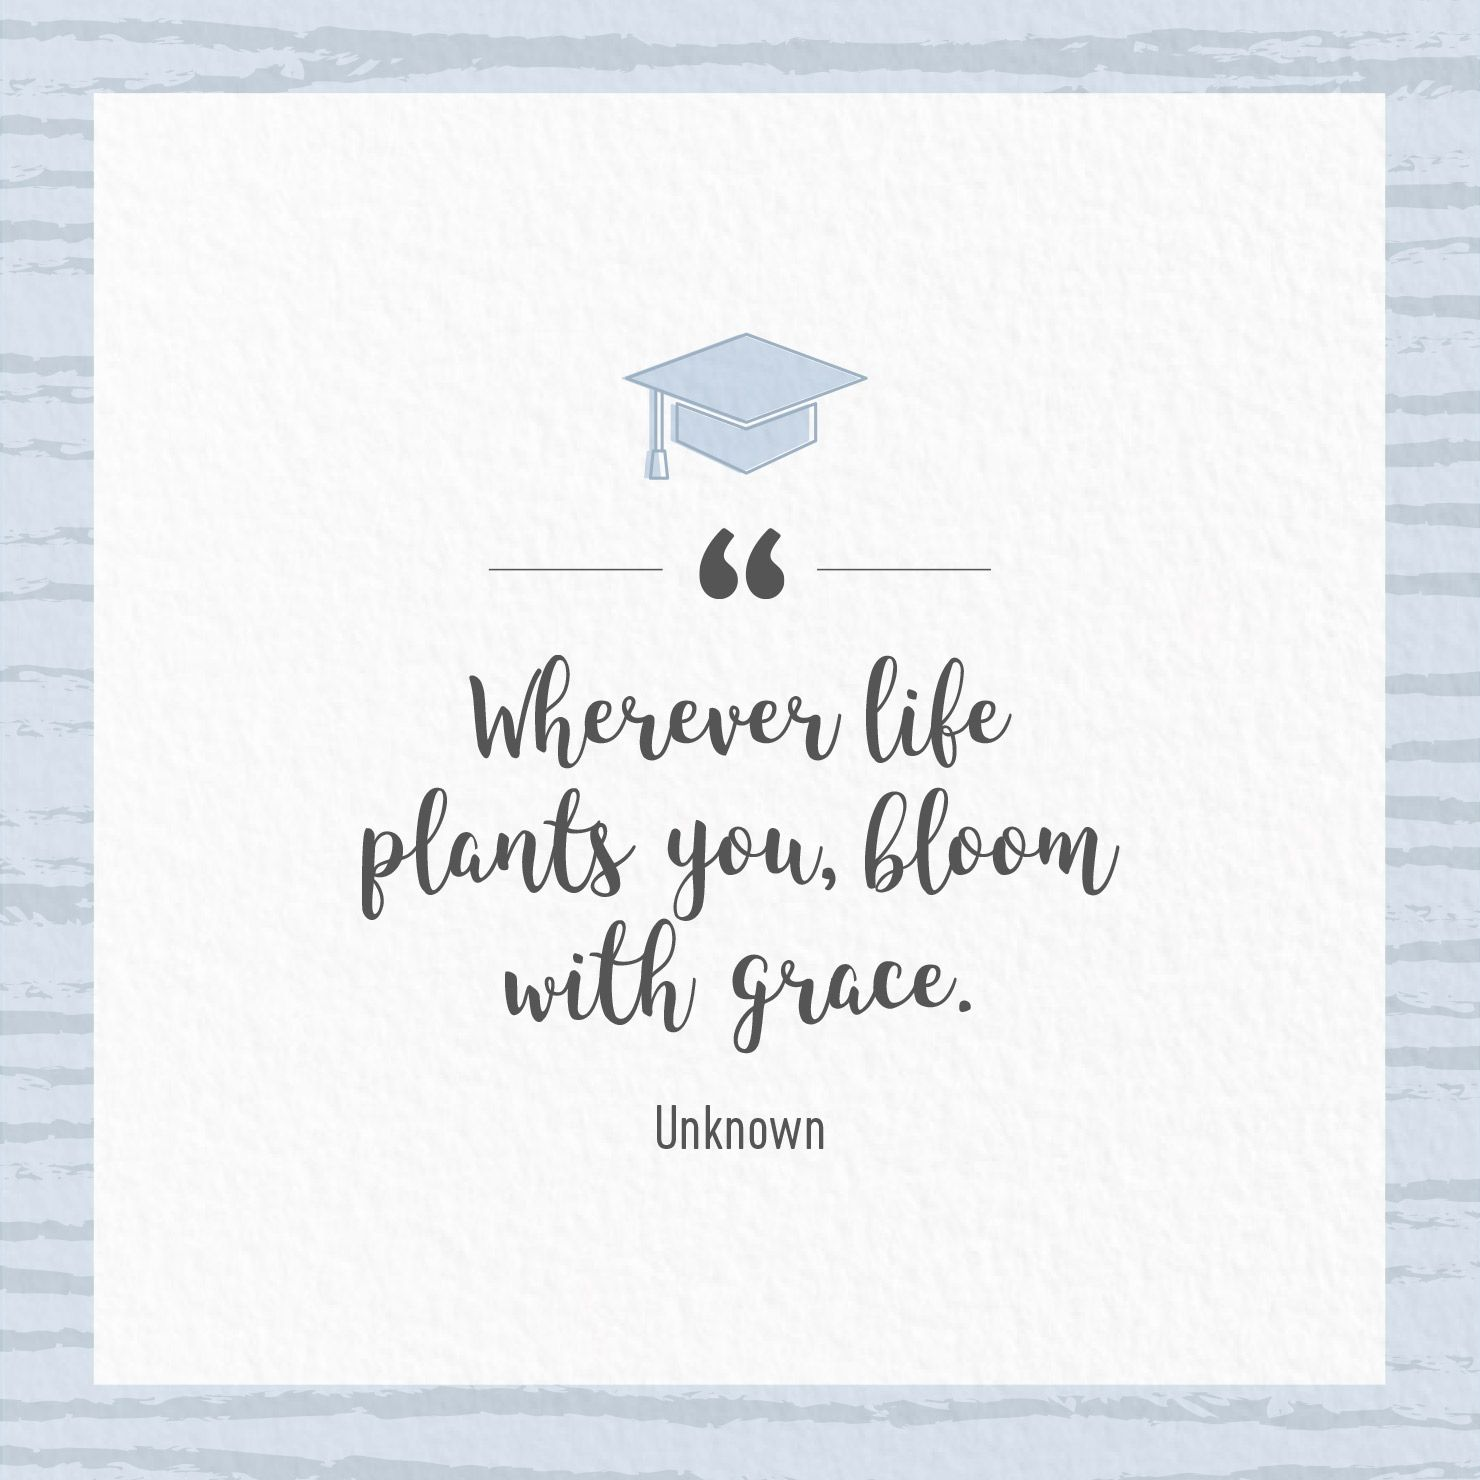 115 Graduation Quotes And Sayings To Inspire Gifts Com Blog Graduation Quotes Funny Graduation Quotes Grad Quotes